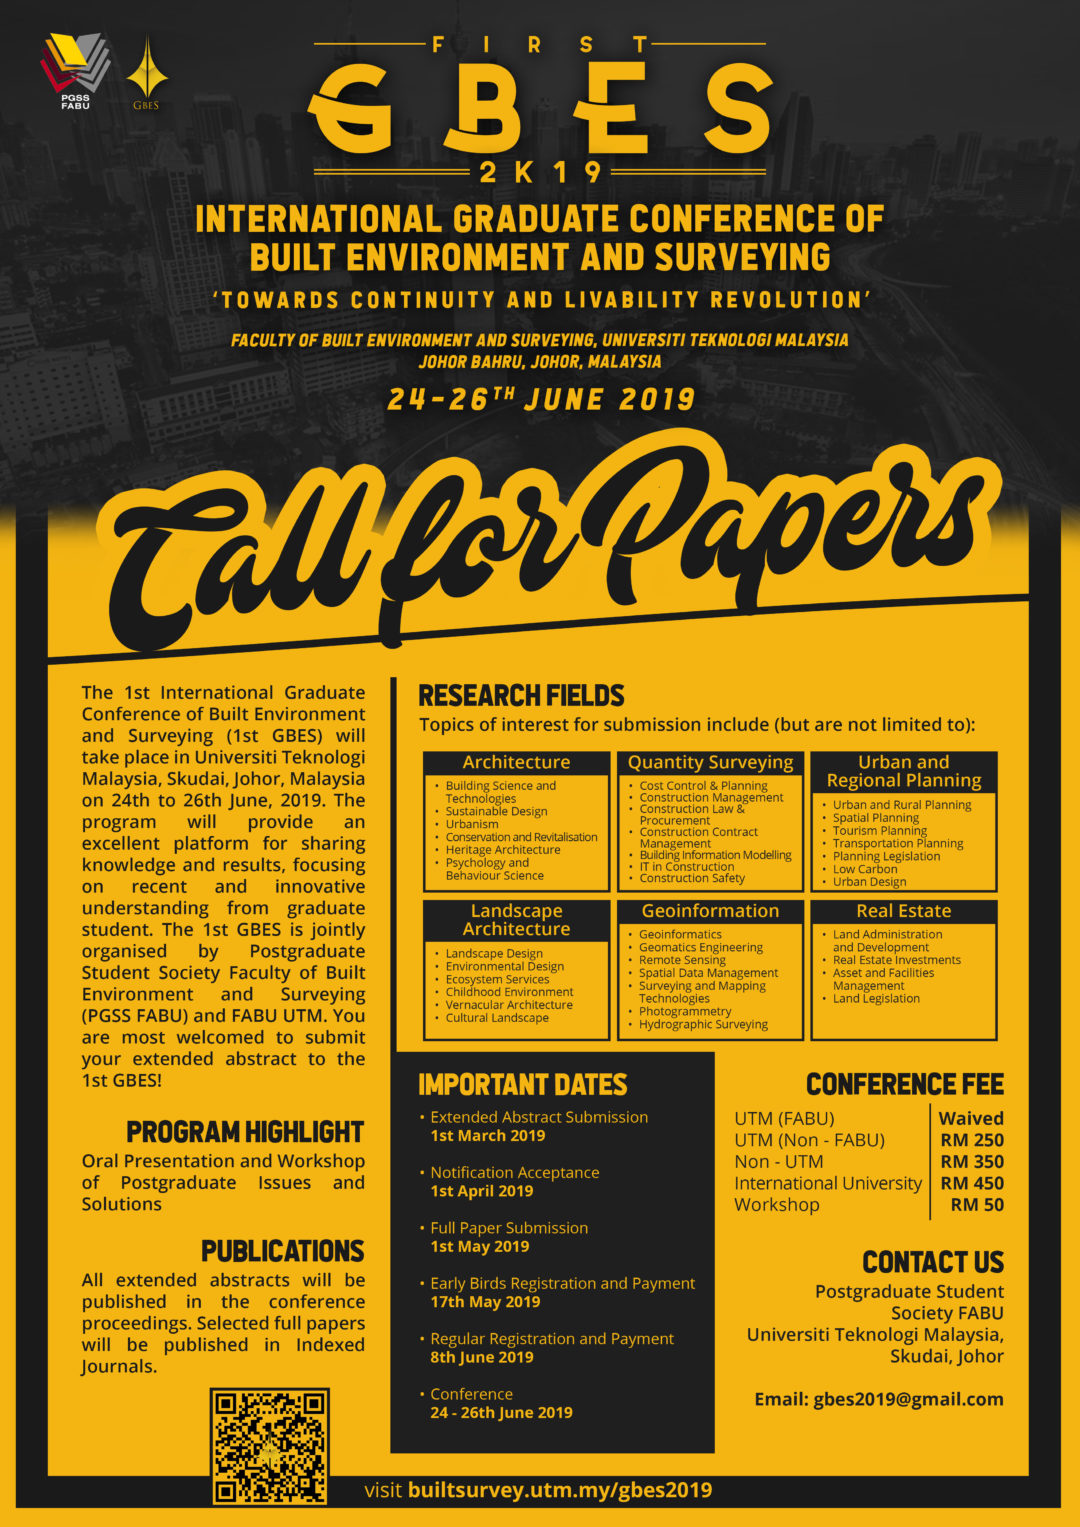 CALL FOR PAPERS : 1ST INTERNATIONAL GRADUATE CONFERENCE OF BUILT ENVIRONMENT AND SURVEYING